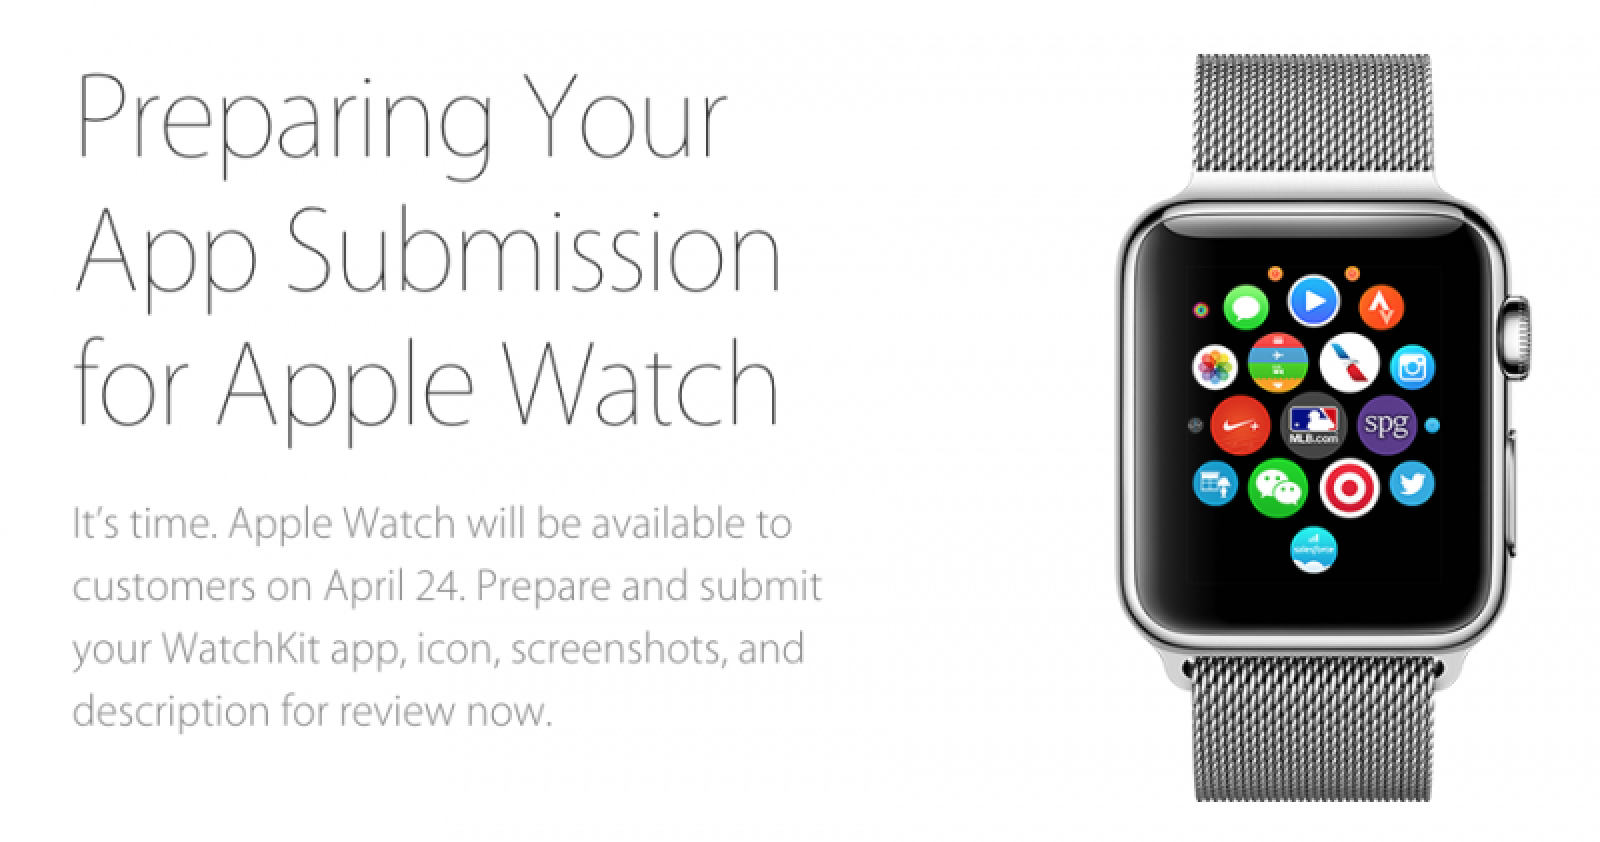 Apple Watch App Submissions